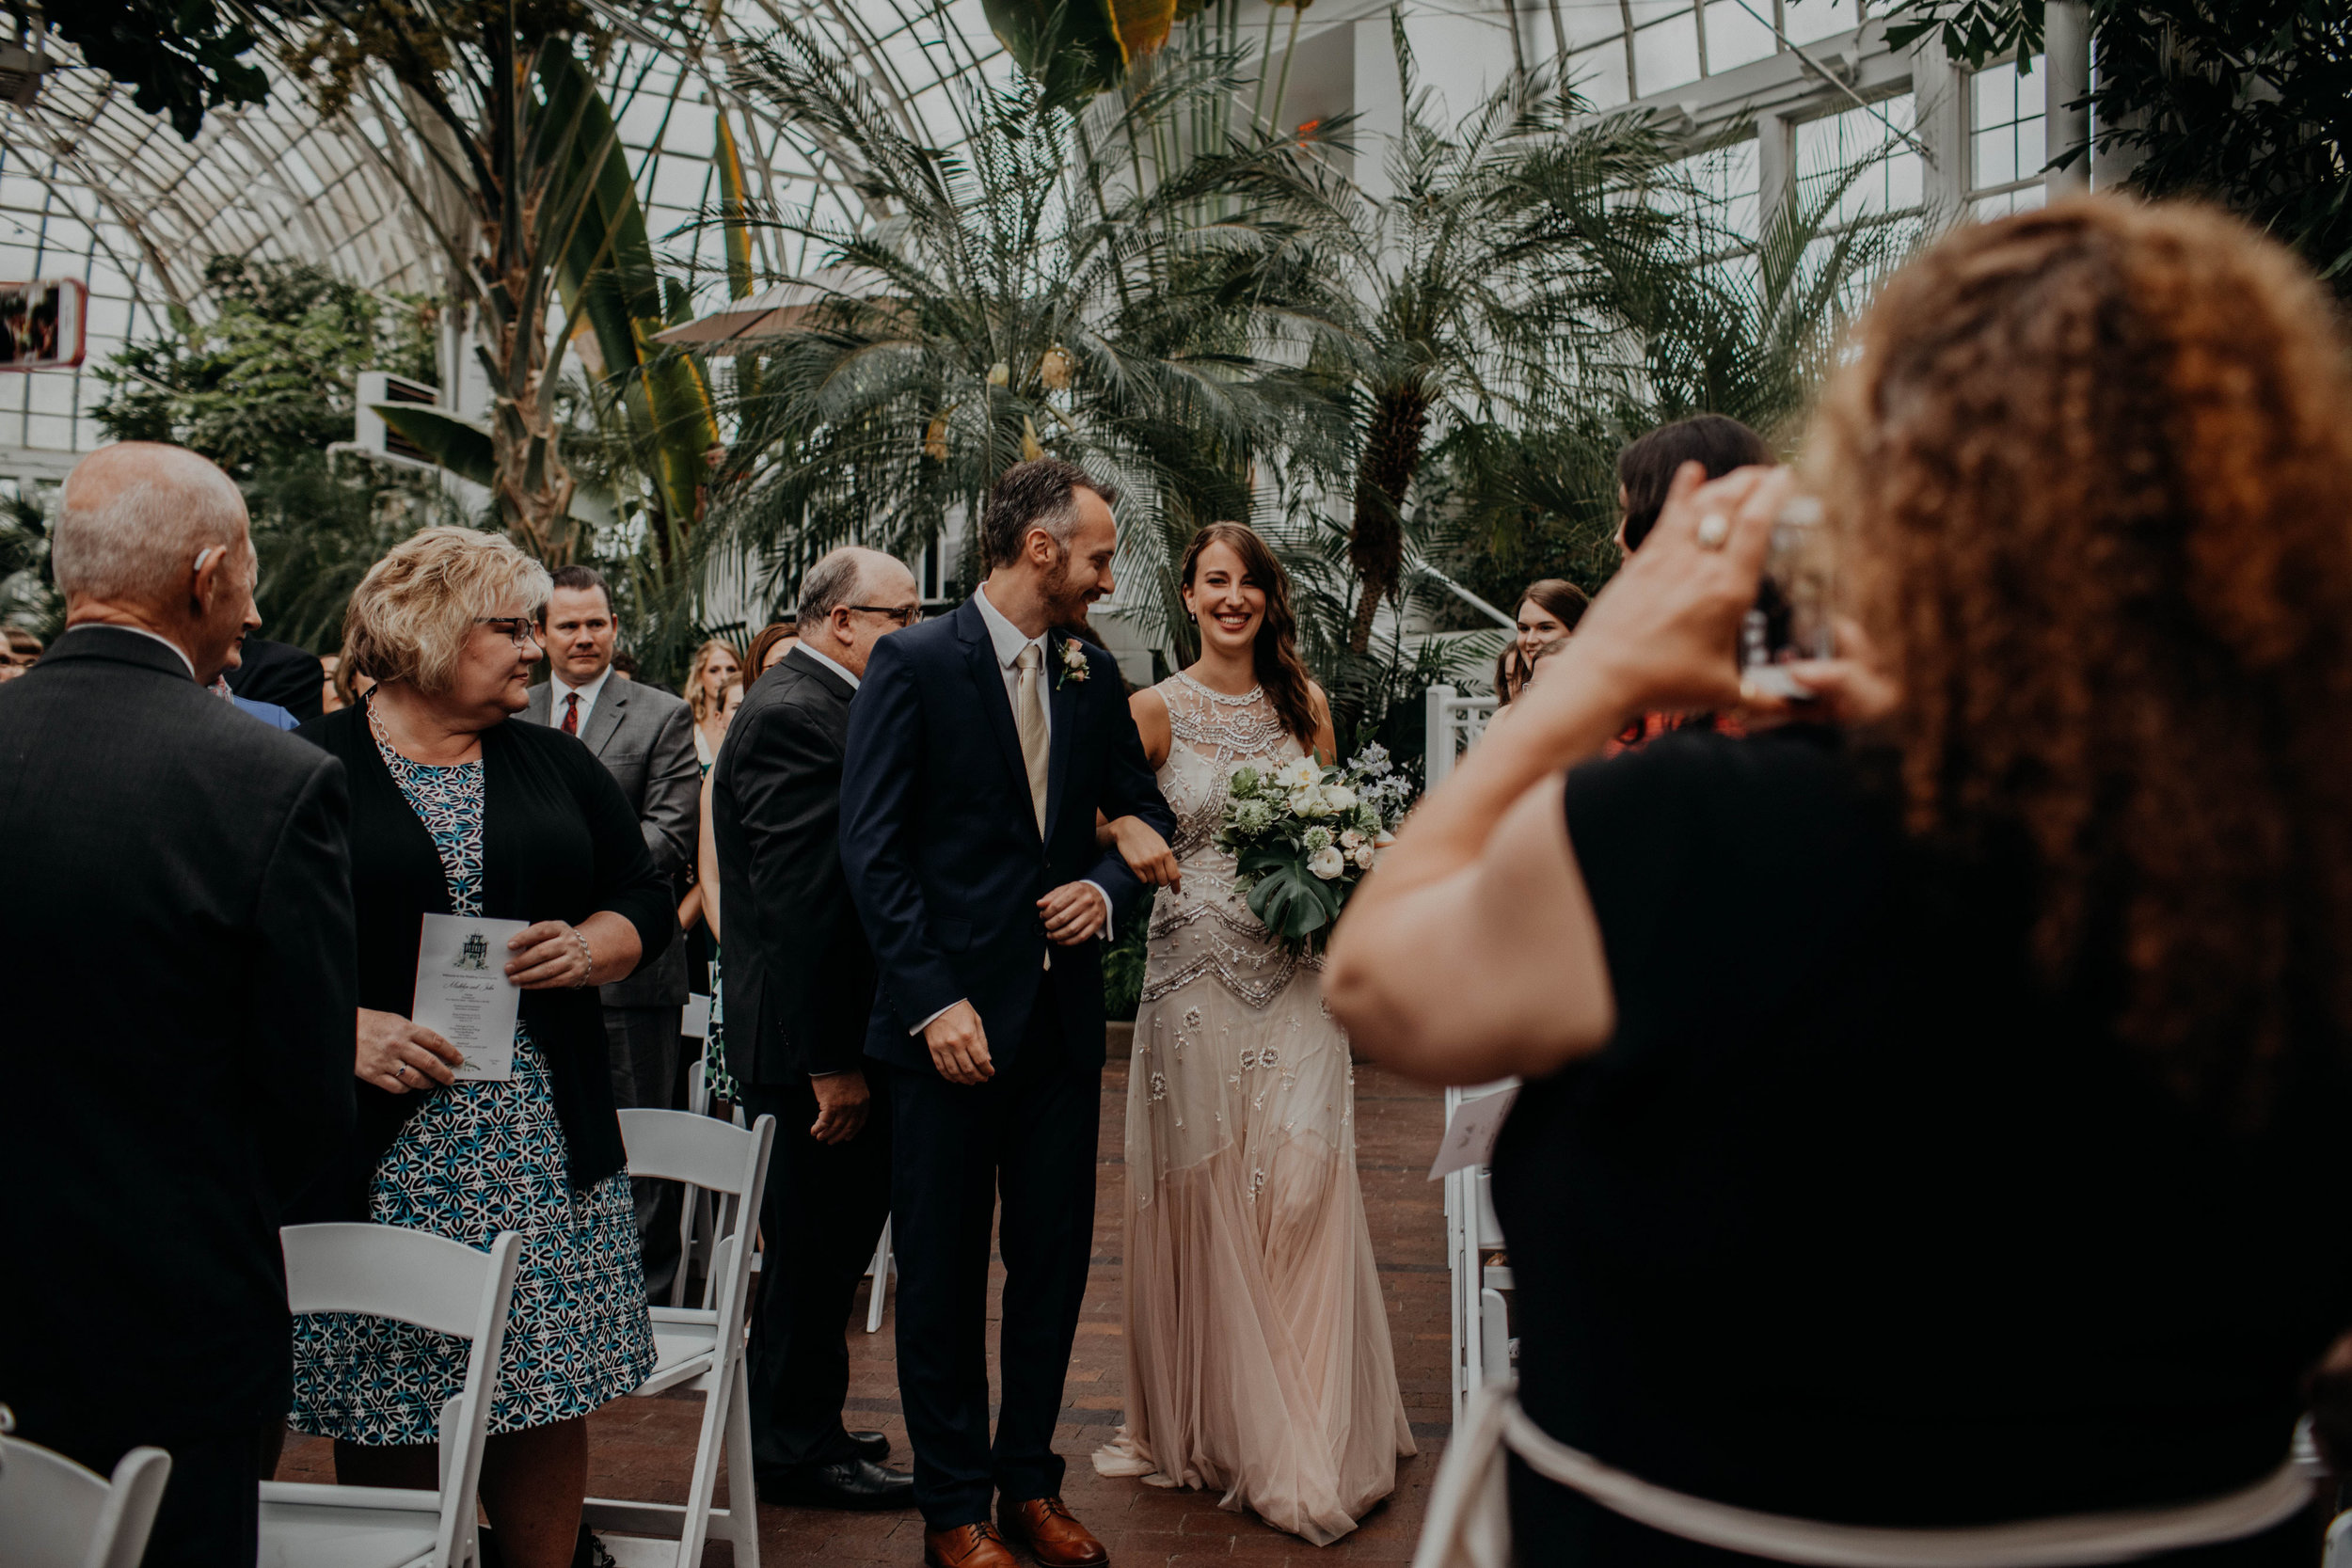 franklin park conservatory wedding columbus ohio wedding photographer grace e jones photography259.jpg